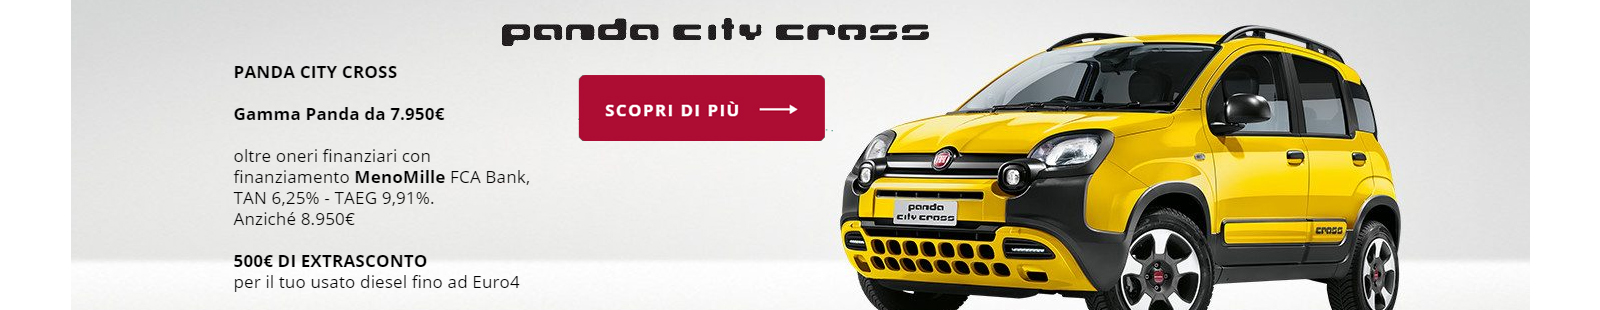 180226-fiat-panda-city-cross